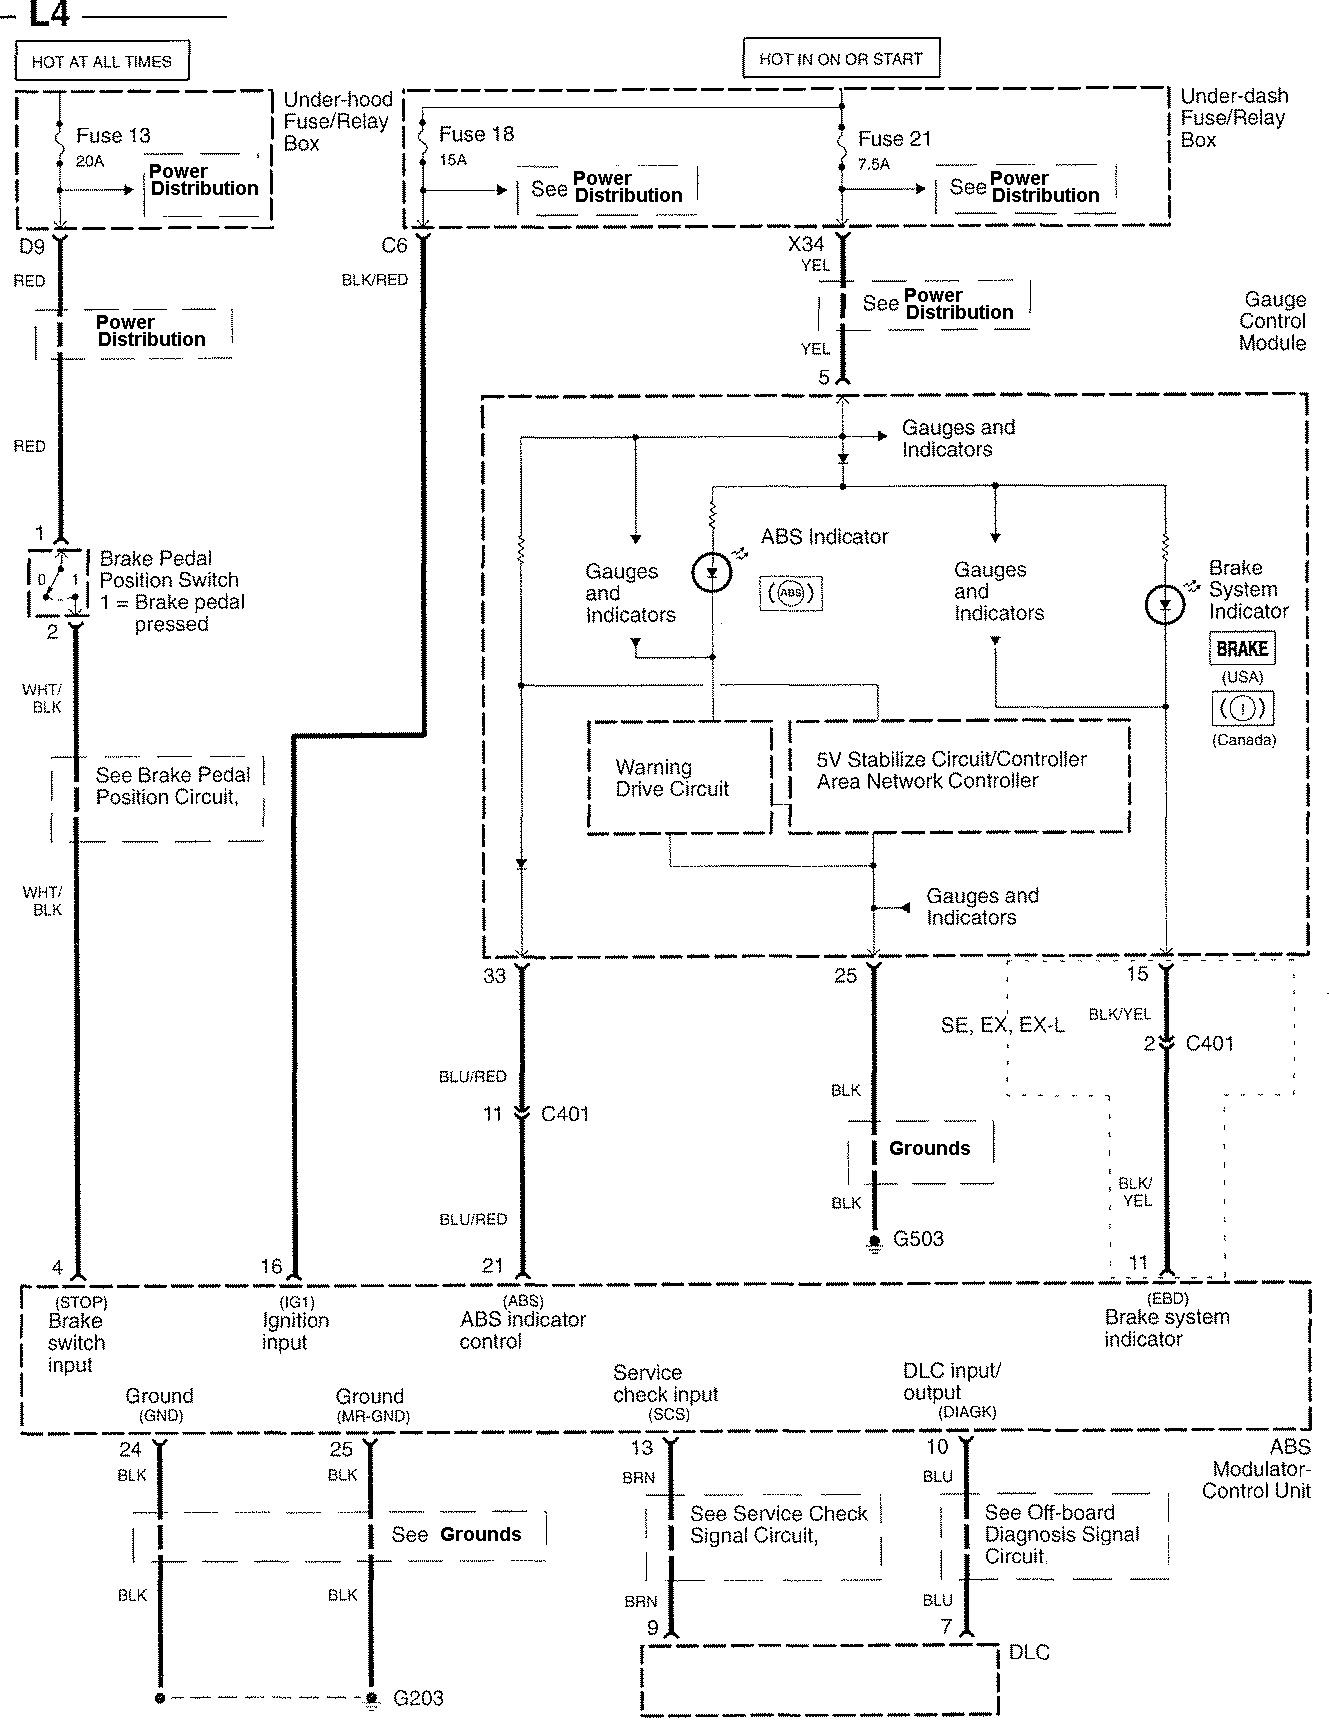 Honda Accord 2006 wiring diagrams ABS CARKNOWLEDGE